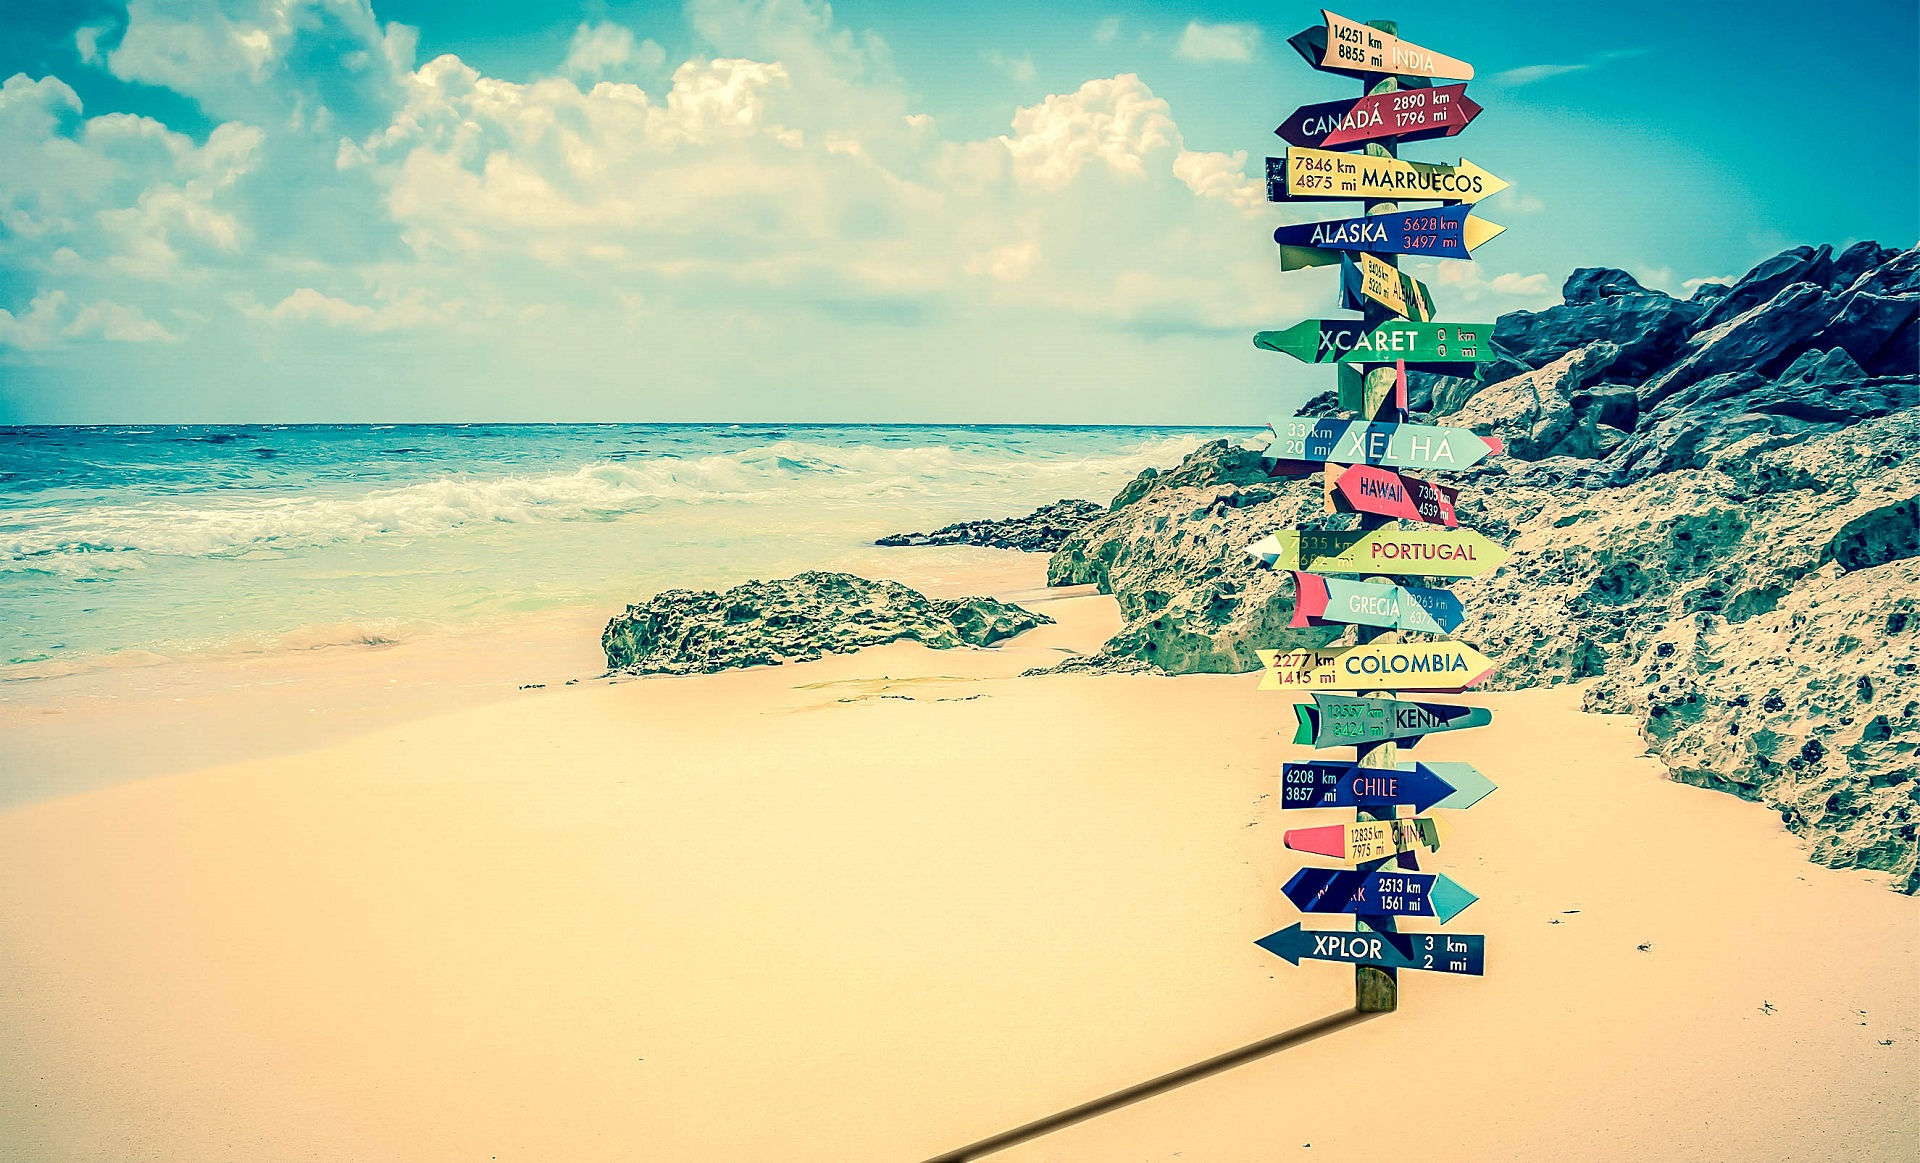 Signpost on the beach